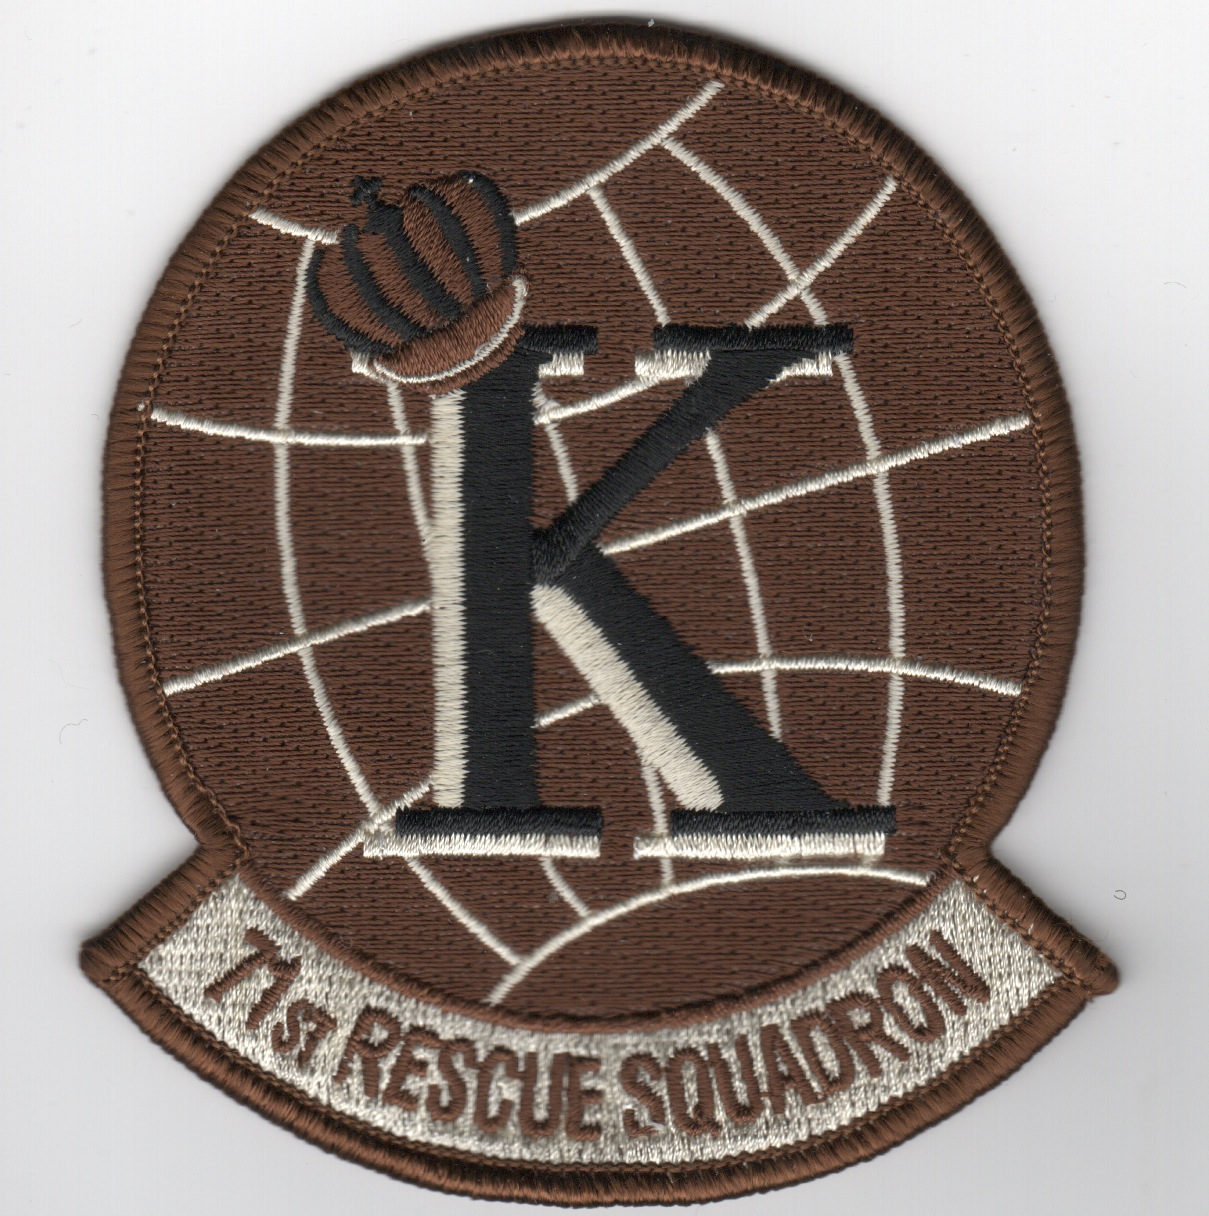 71st Rescue Sqdn Patch (Des)